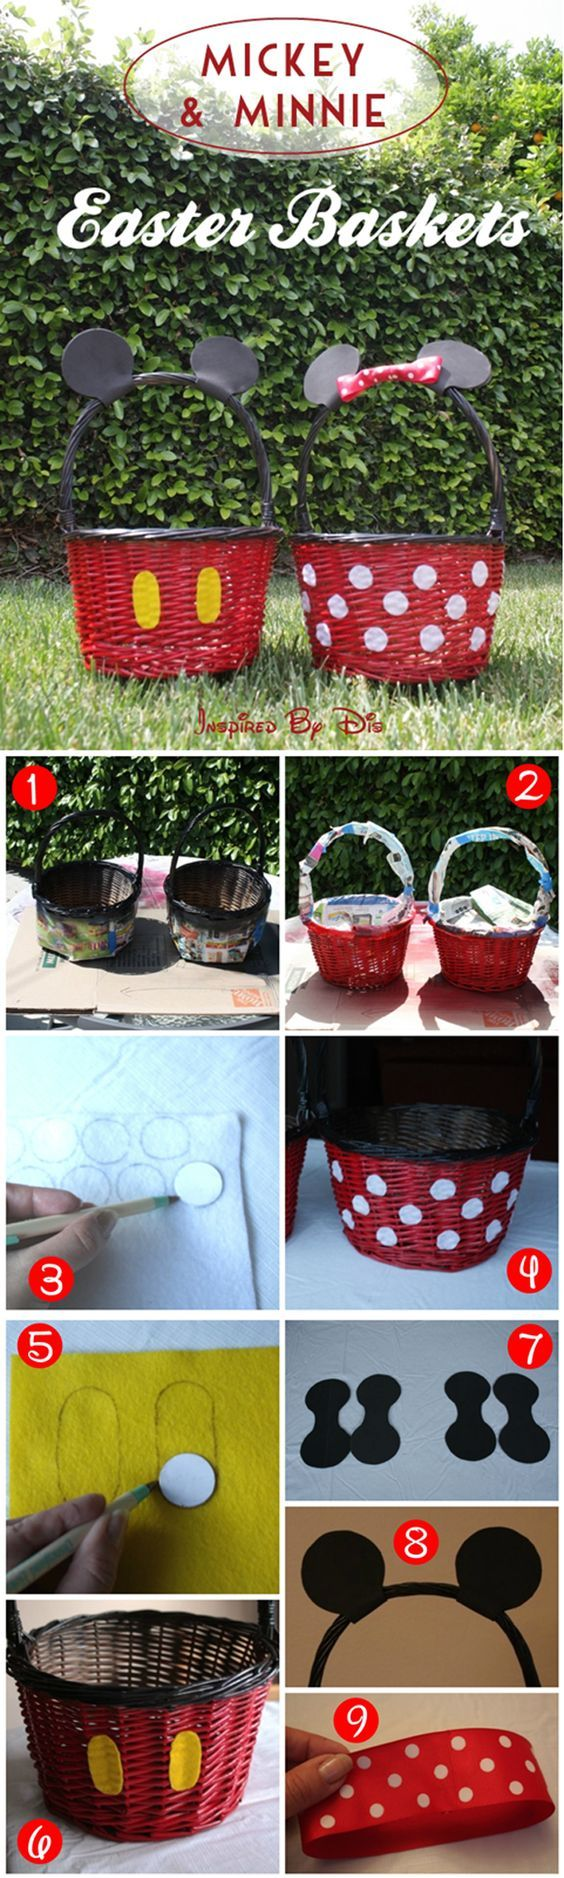 27 best easter basket diy inspiration images on pinterest easter 15 diy easter basket ideas that will have you hoppin negle